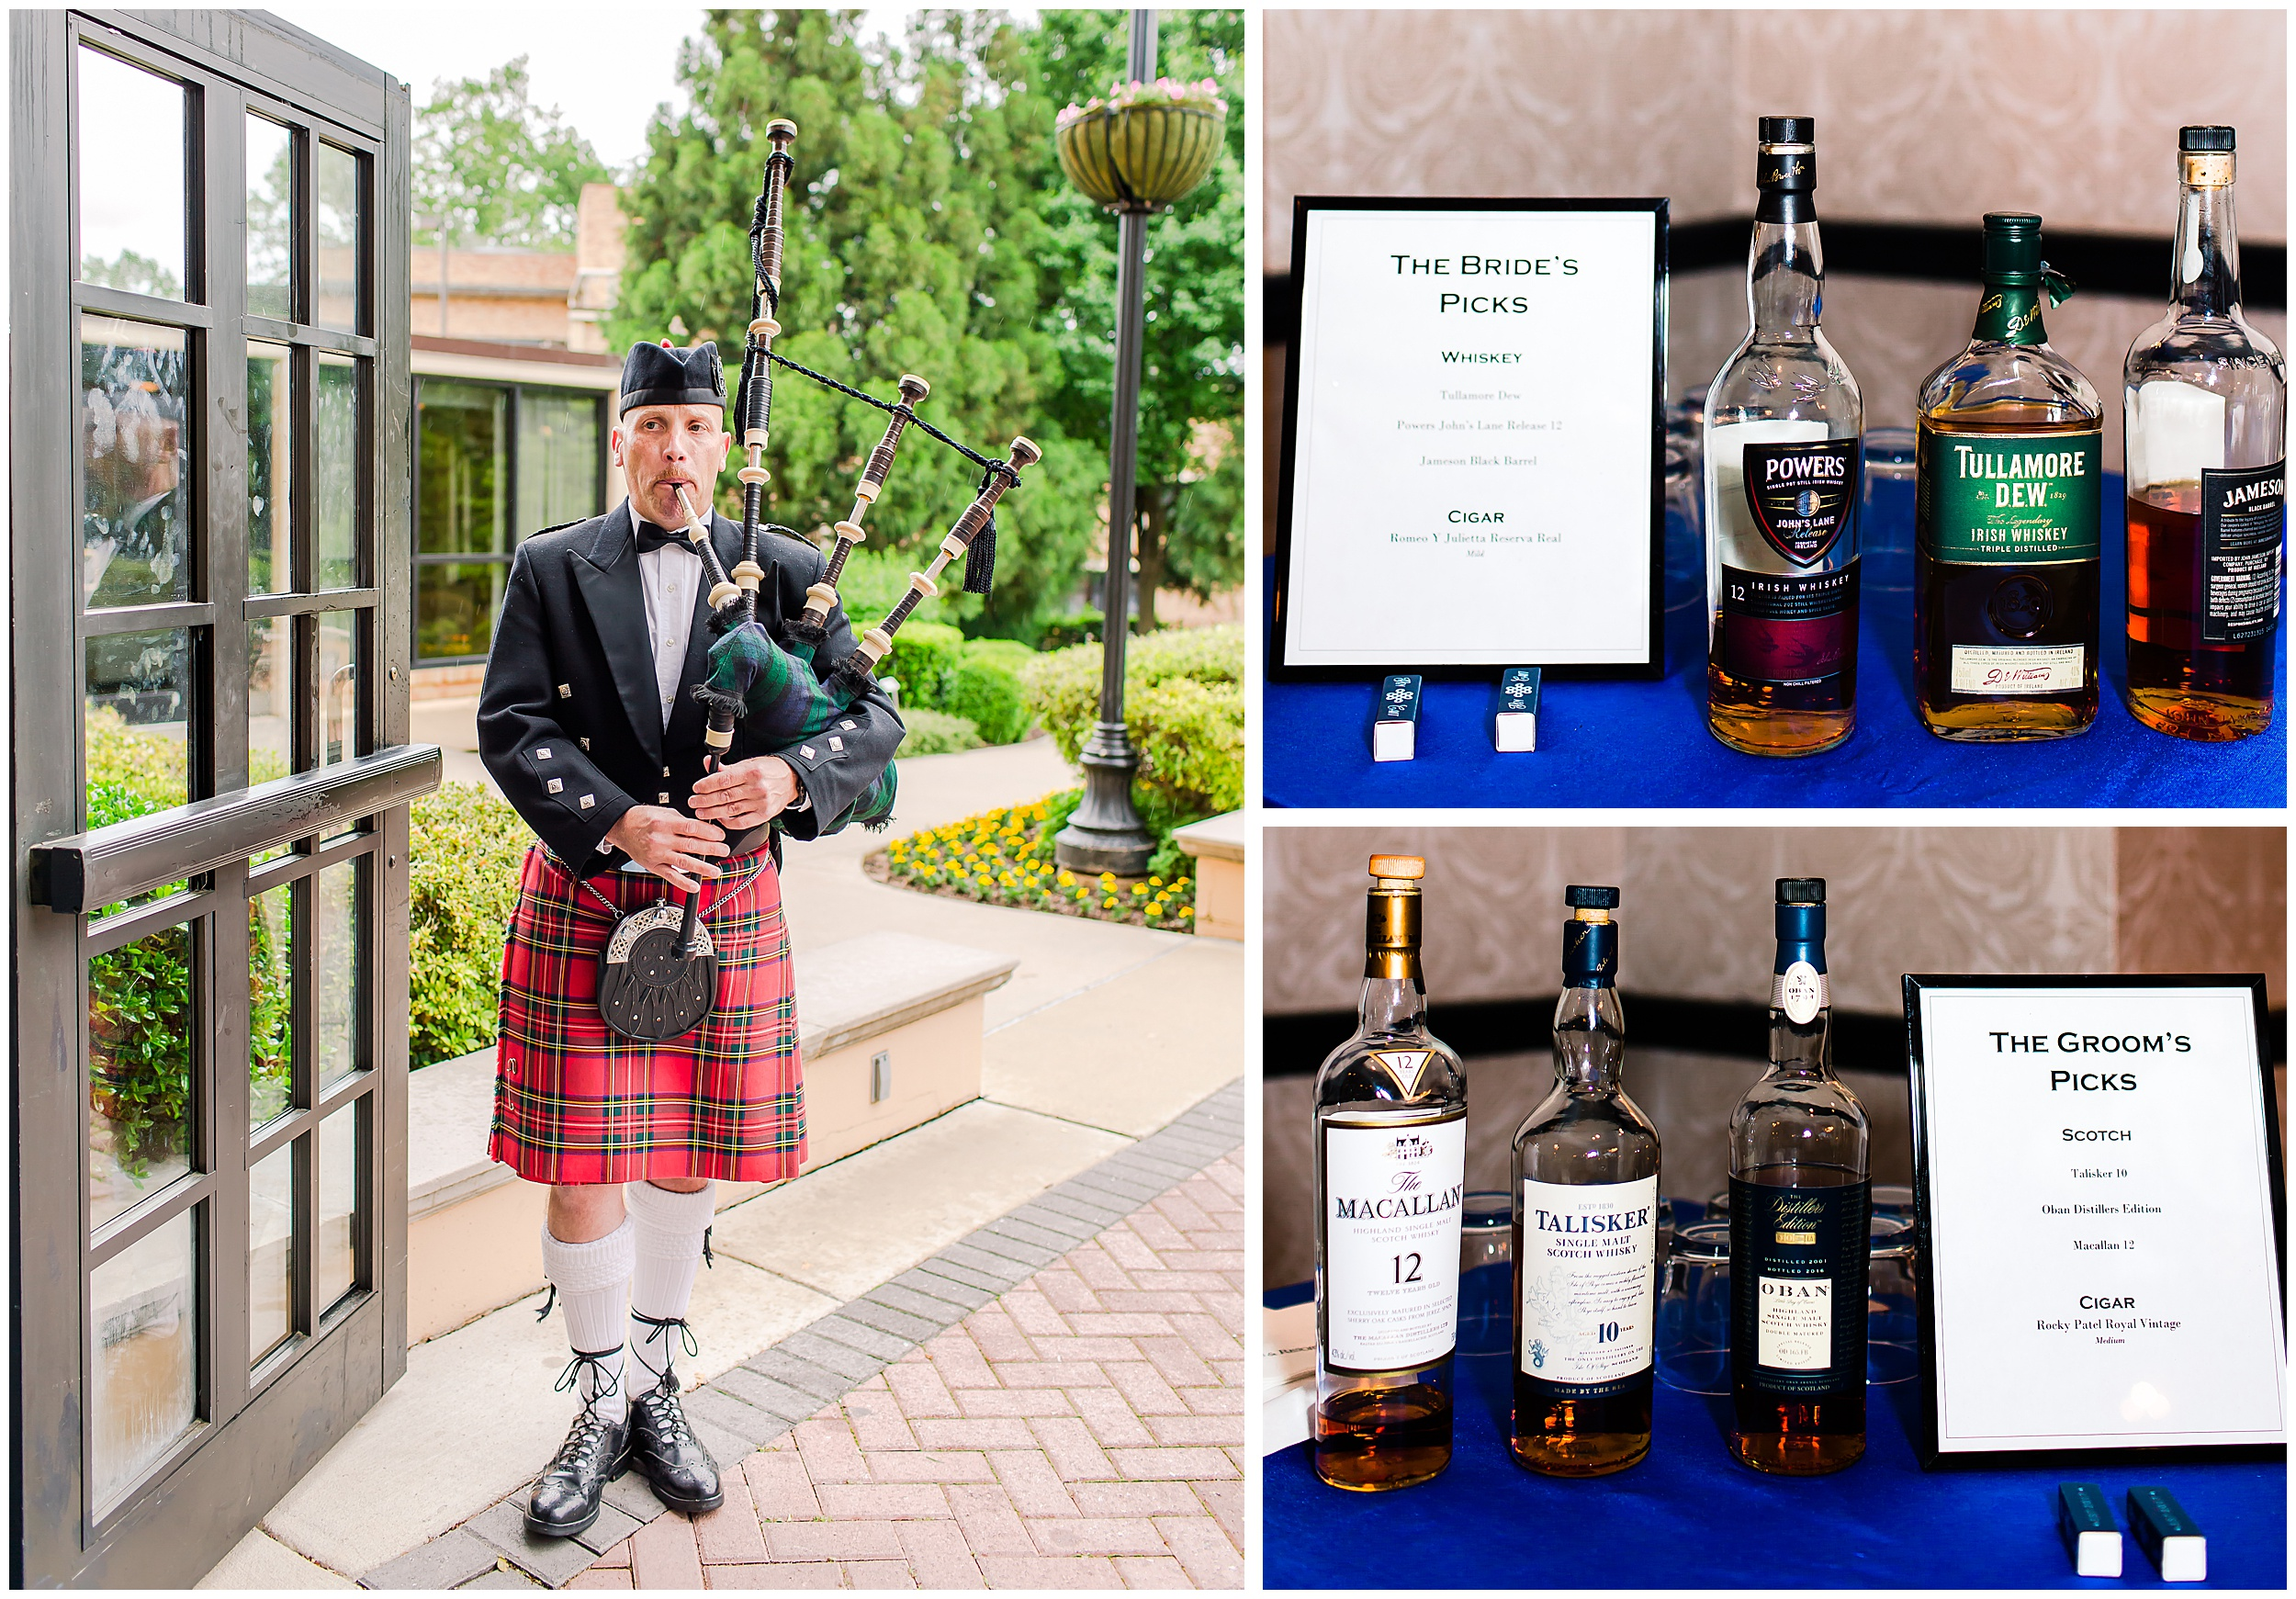 scottish-bagpiper-whiskey-bar-wedding